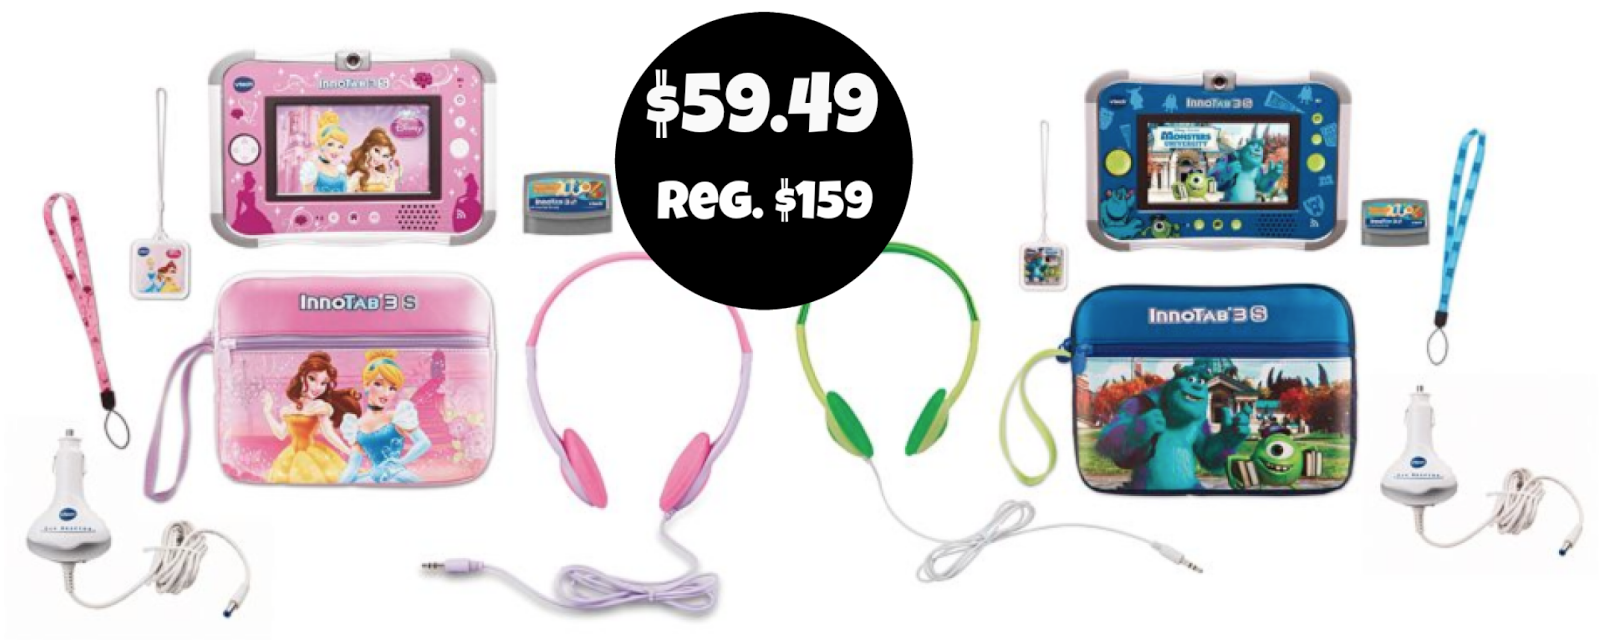 http://www.thebinderladies.com/2014/10/innotab-3s-gift-sets-by-vtech-5949.html#.VEqCbEvdtbw